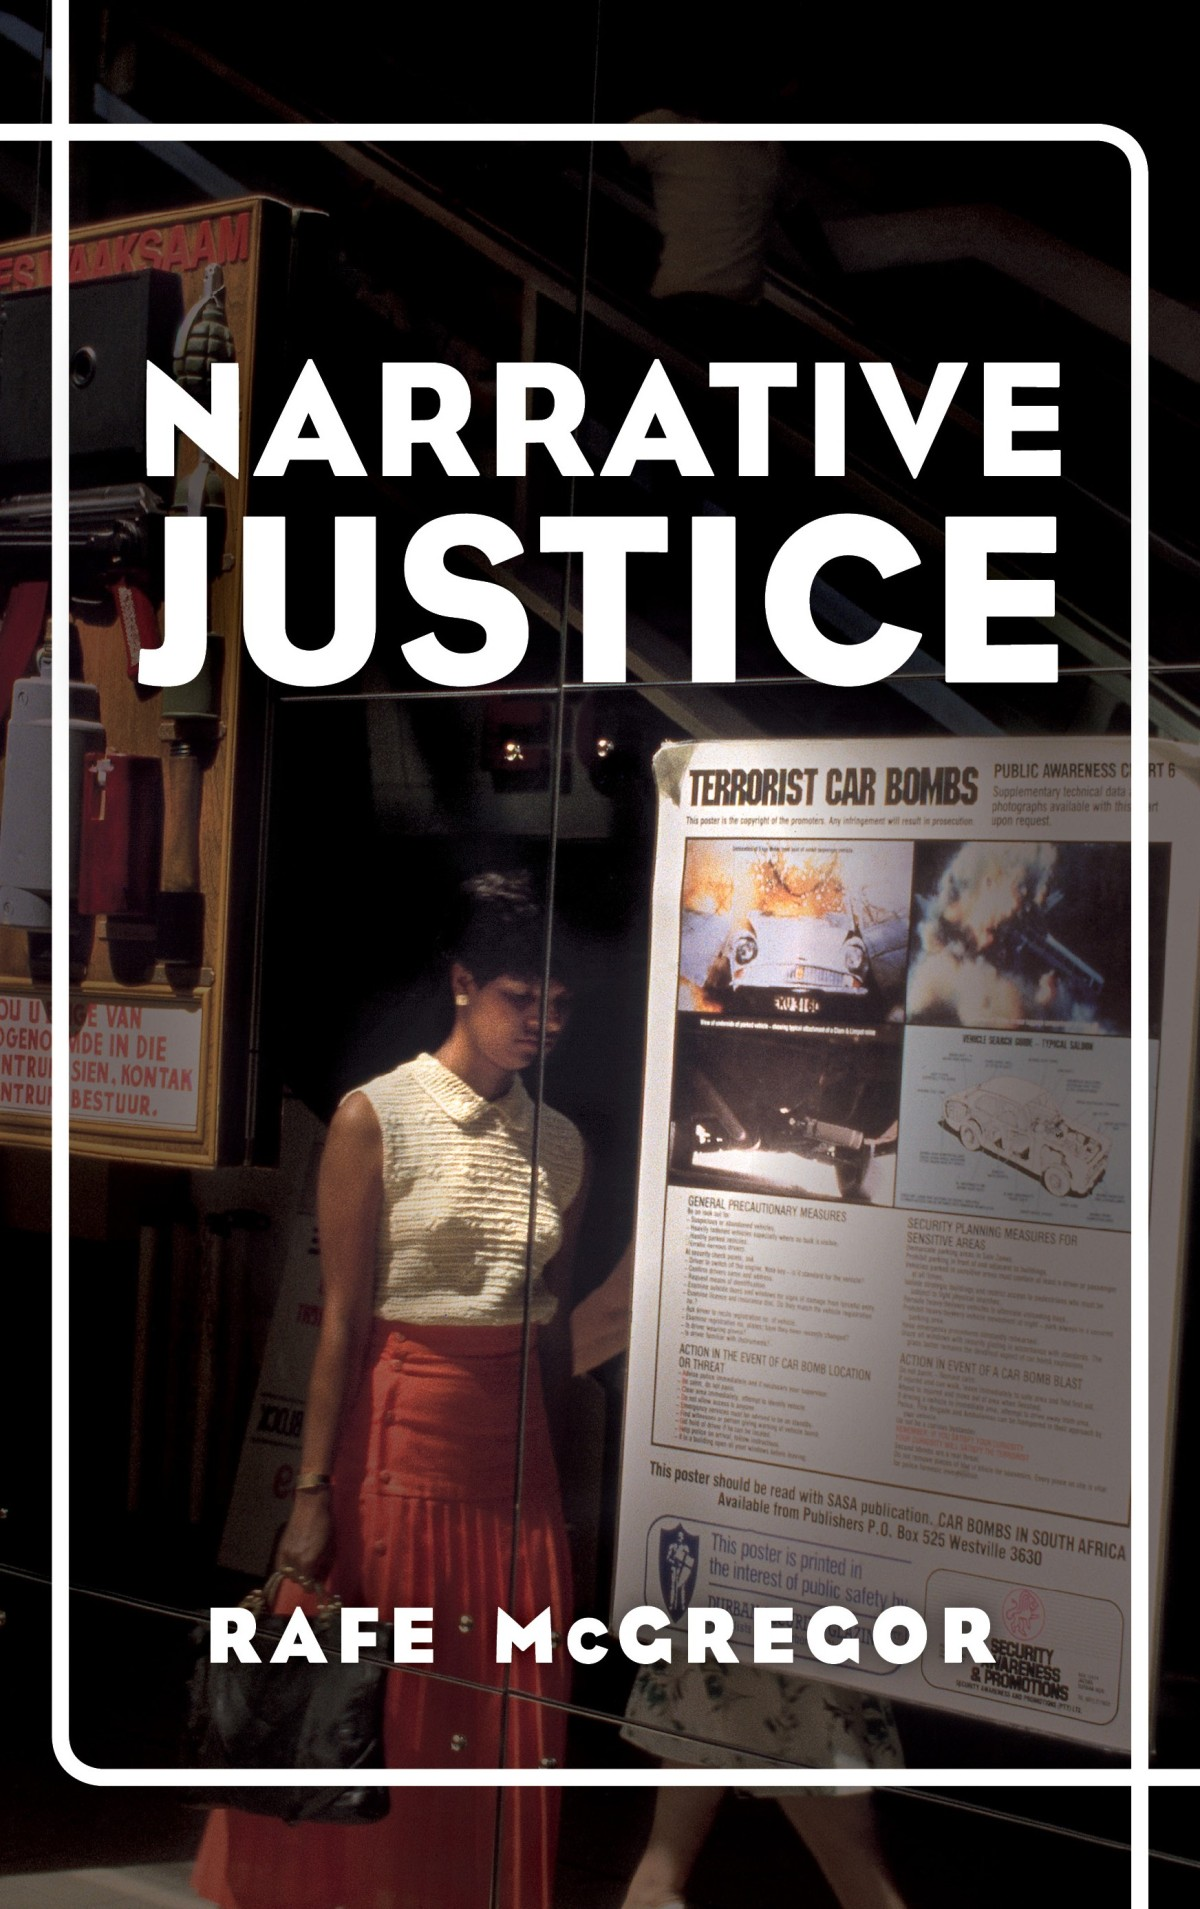 From Narrative Justice to Narrative Methodology